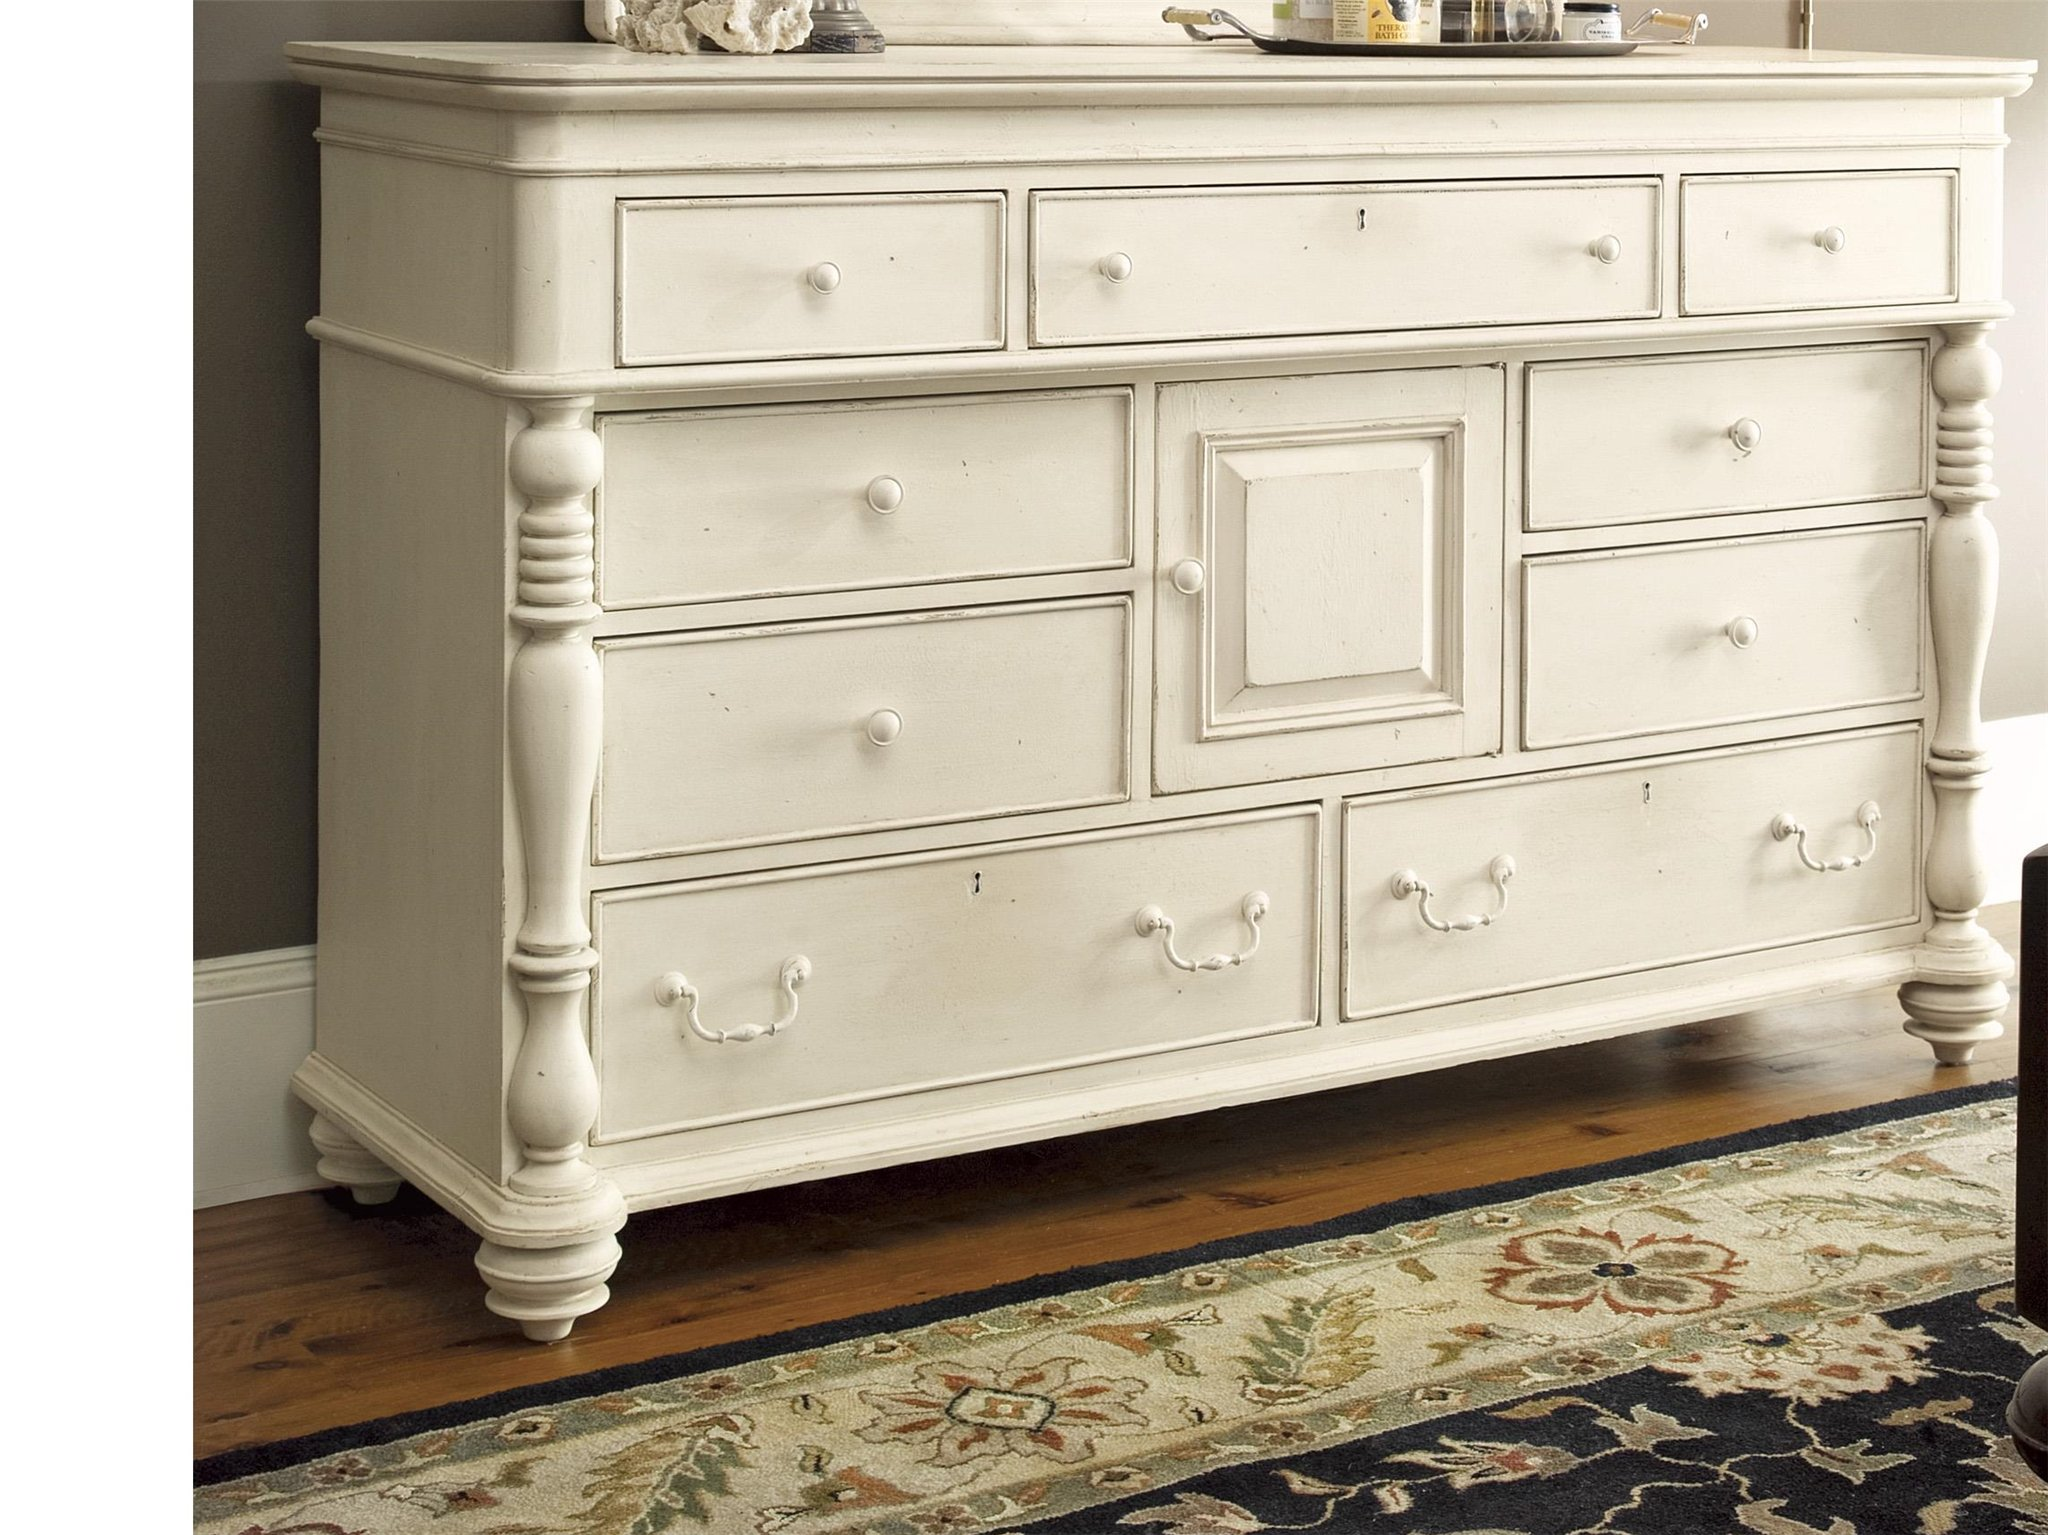 Universal furniture paula deen home door dresser - Steel magnolia bedroom furniture ...